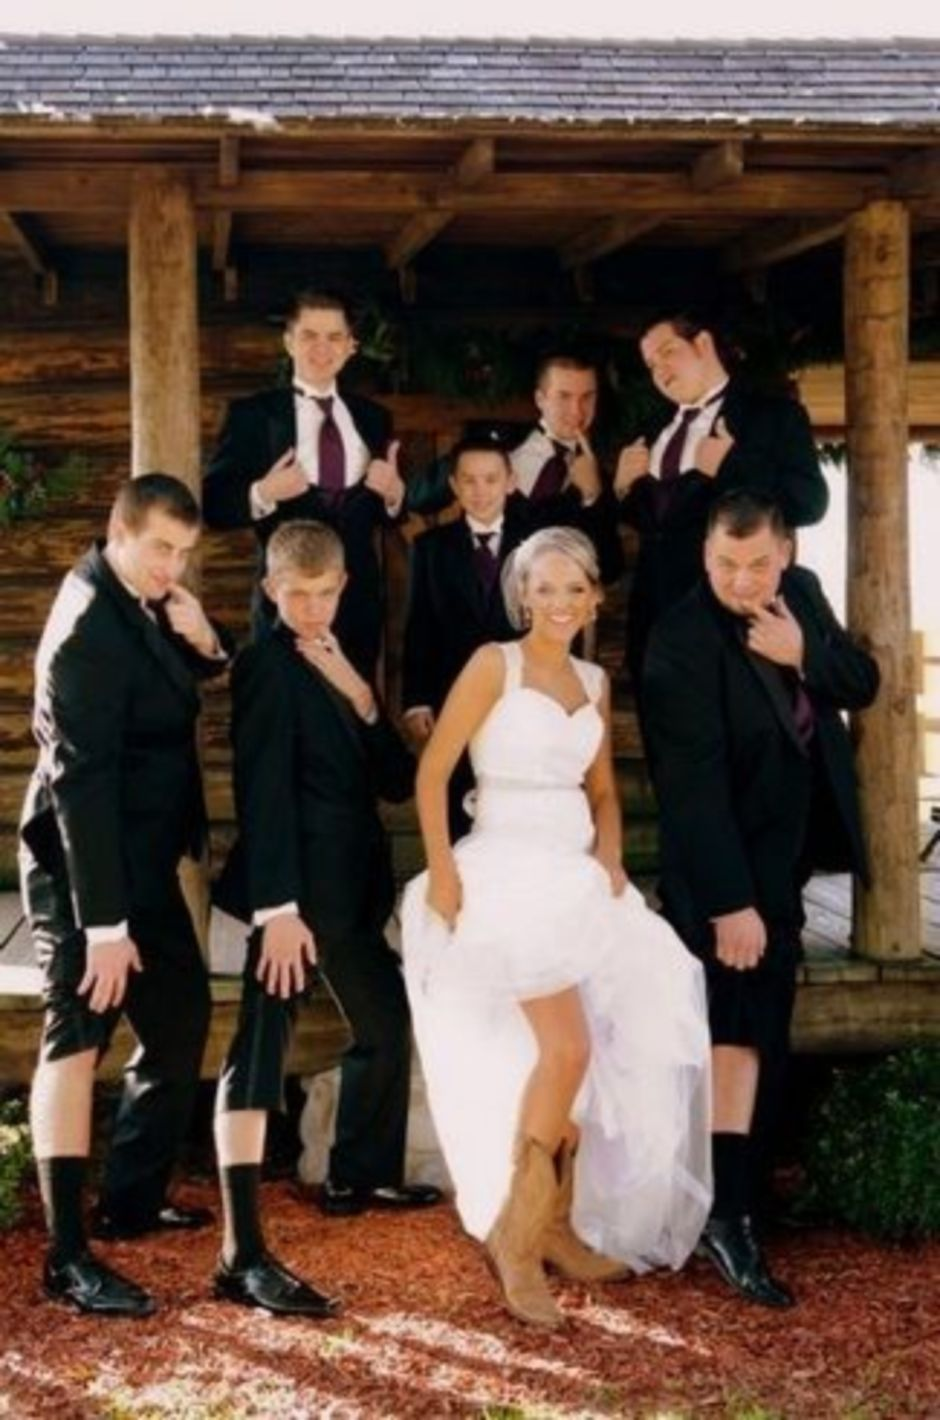 100+ Groomsmen Photos Poses Ideas You Can't Miss 37